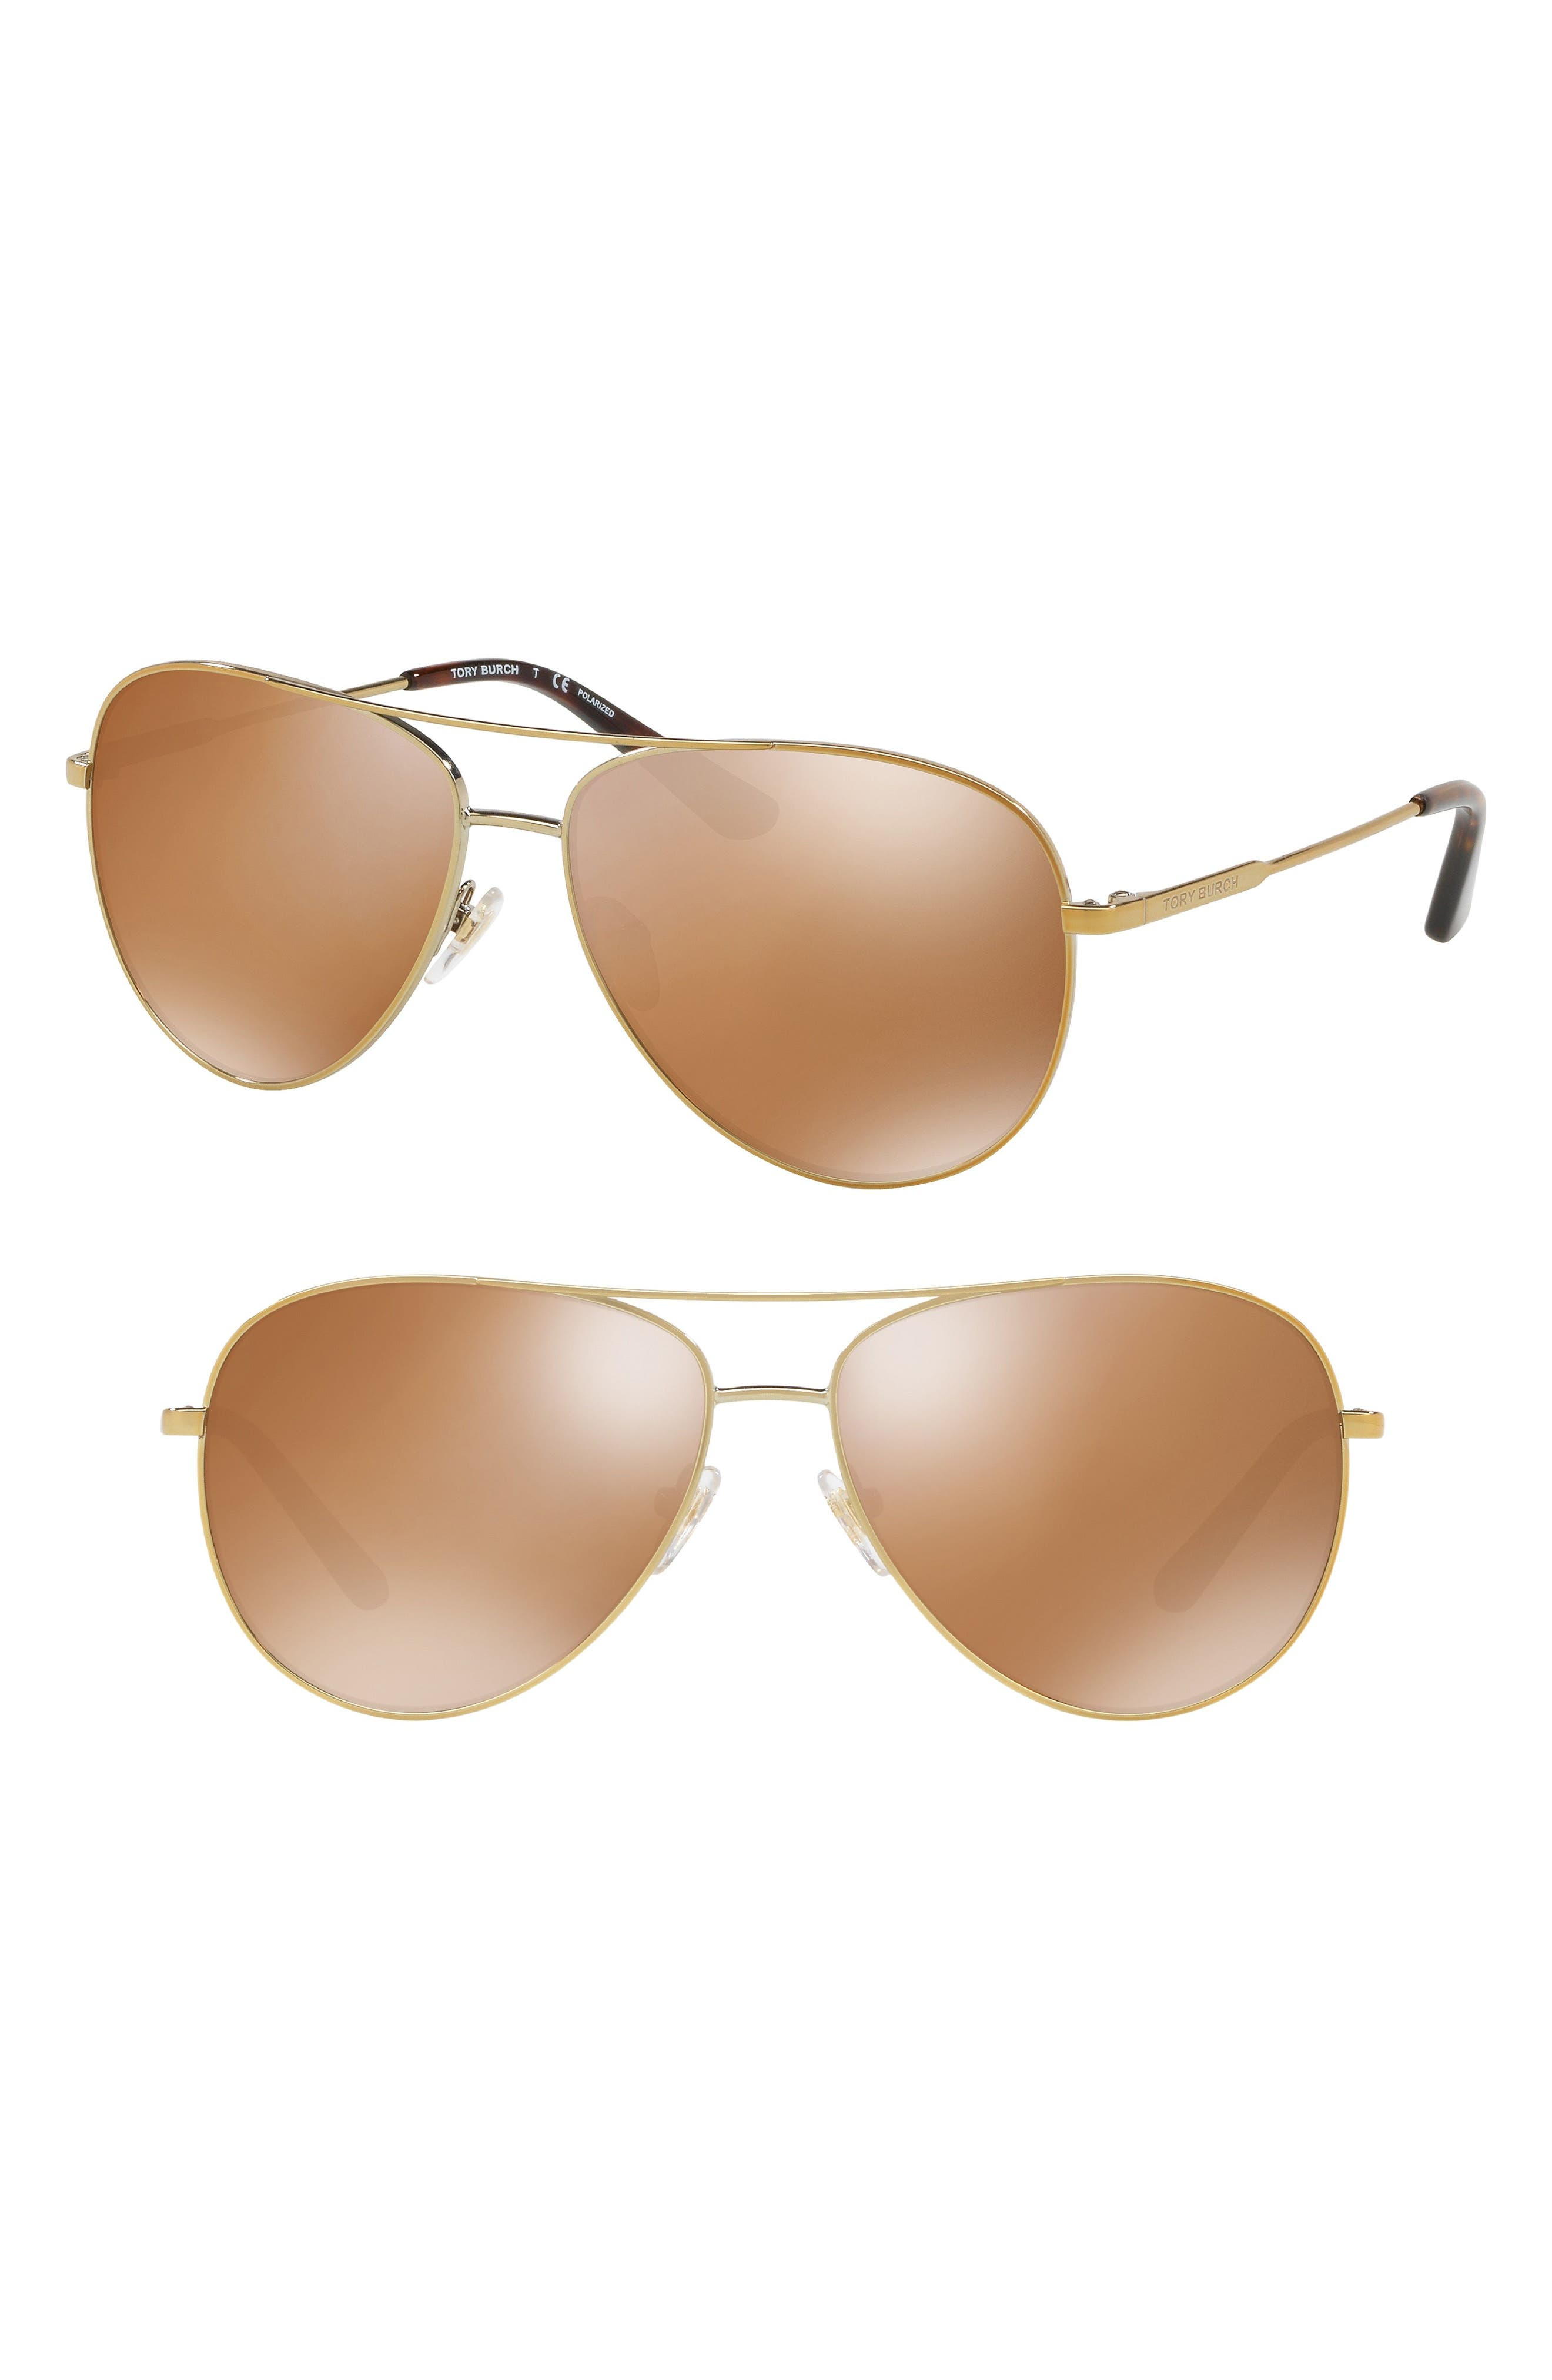 59mm Thin Polarized Metal Aviator Sunglasses,                         Main,                         color, Brown/ Gold